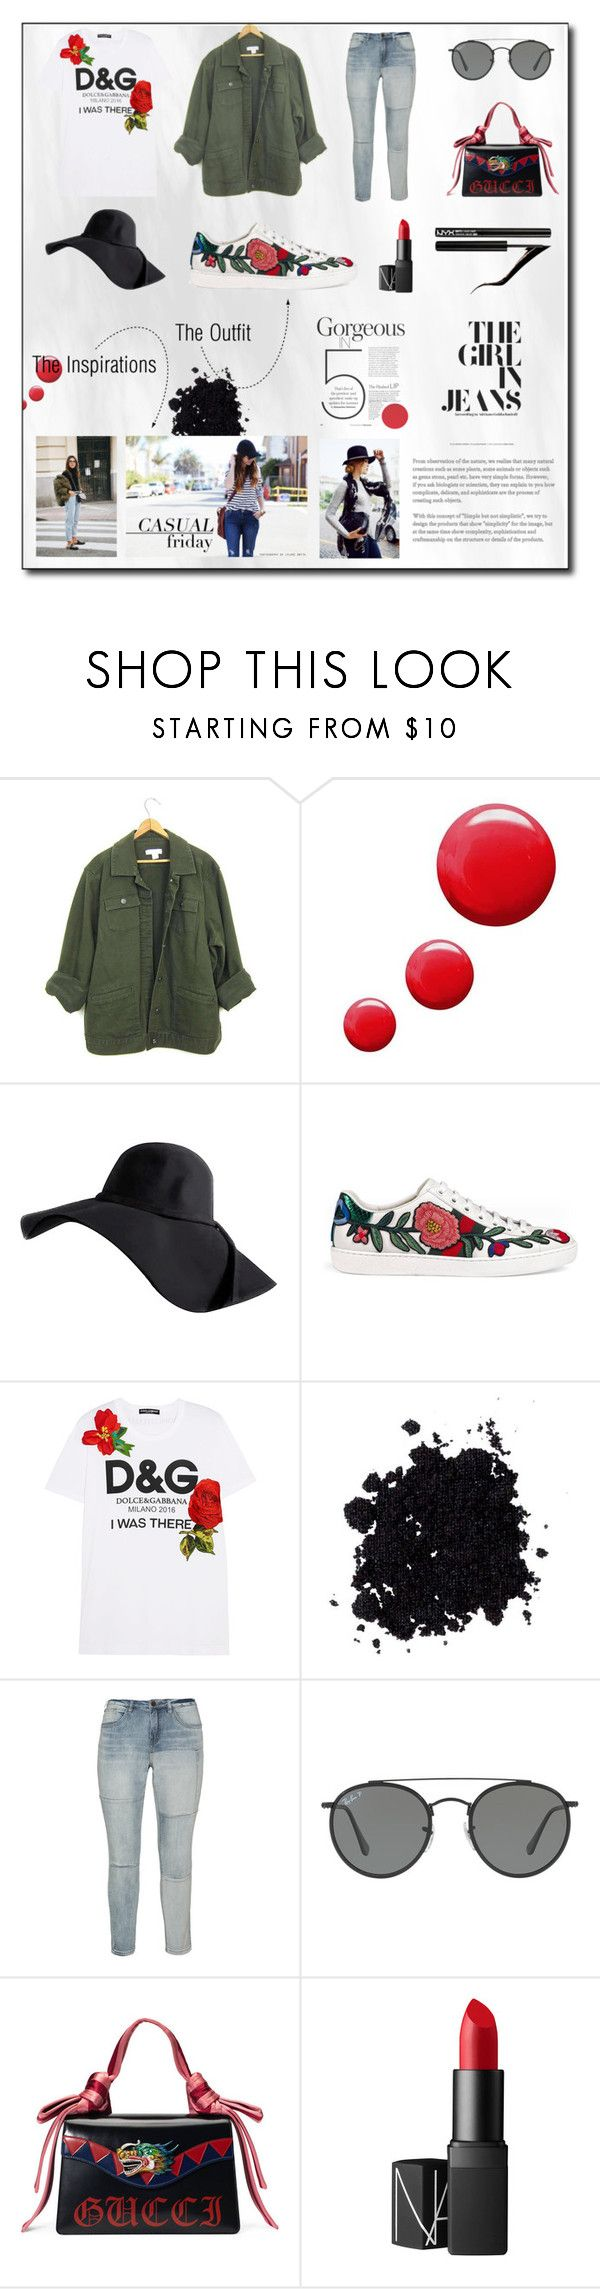 """City Strolls"" by jaimewareham ❤ liked on Polyvore featuring Topshop, Gucci, Dolce&Gabbana, Zizzi, Ray-Ban, NARS Cosmetics, Forever 21 and StreetStyle"